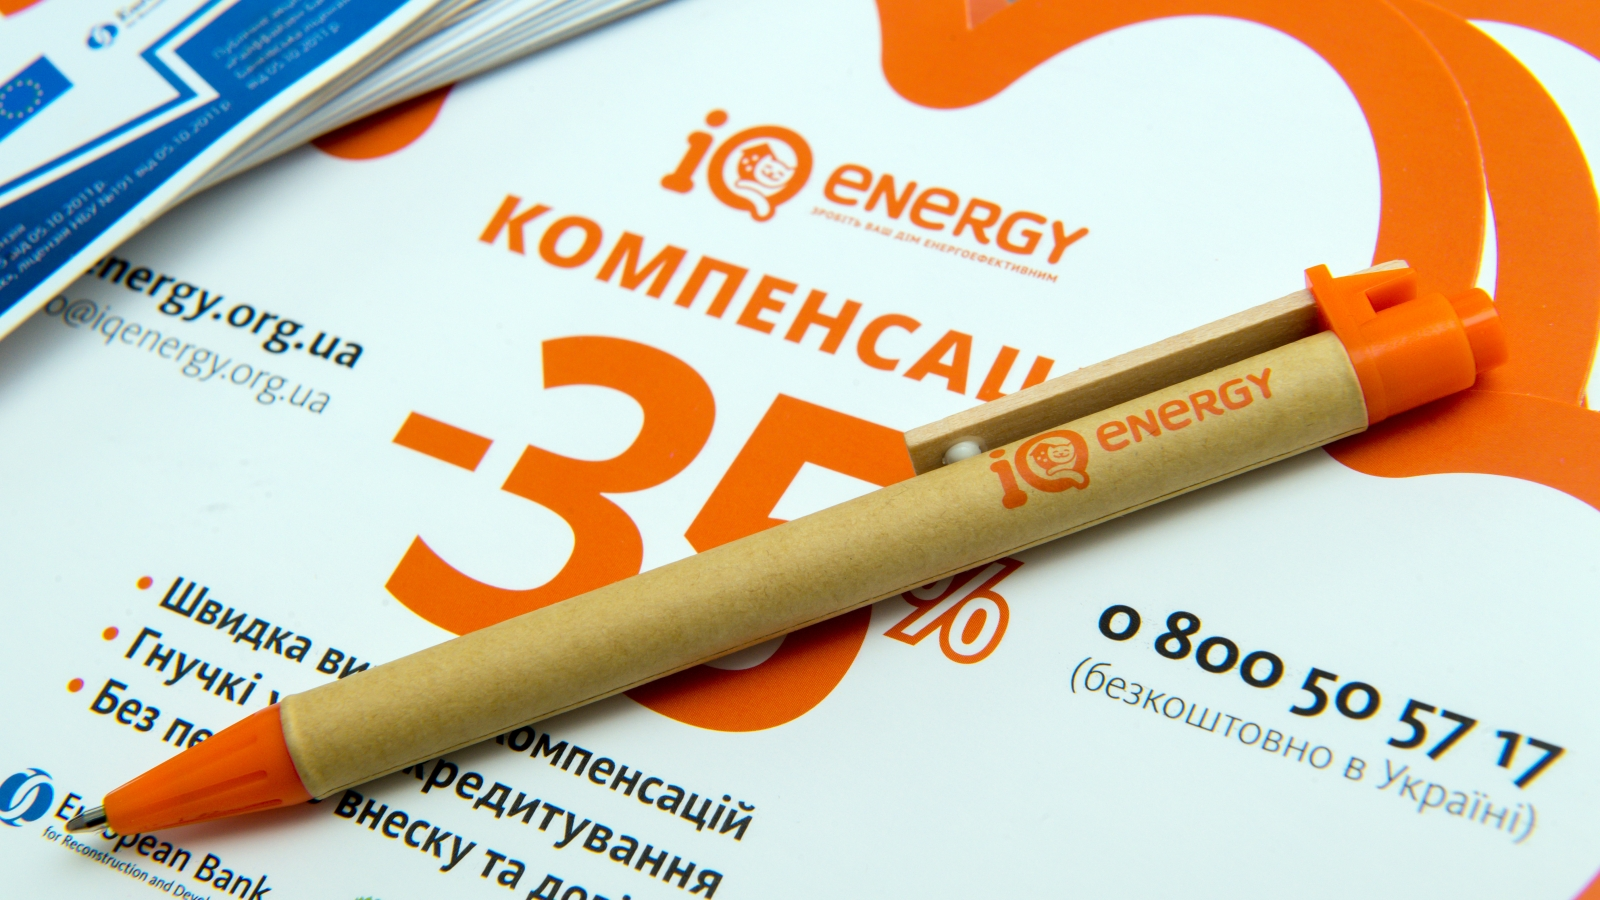 IQ energy programme offers the possibility to reimburse up to 35 per cent of the cost of energy-efficient equipment.